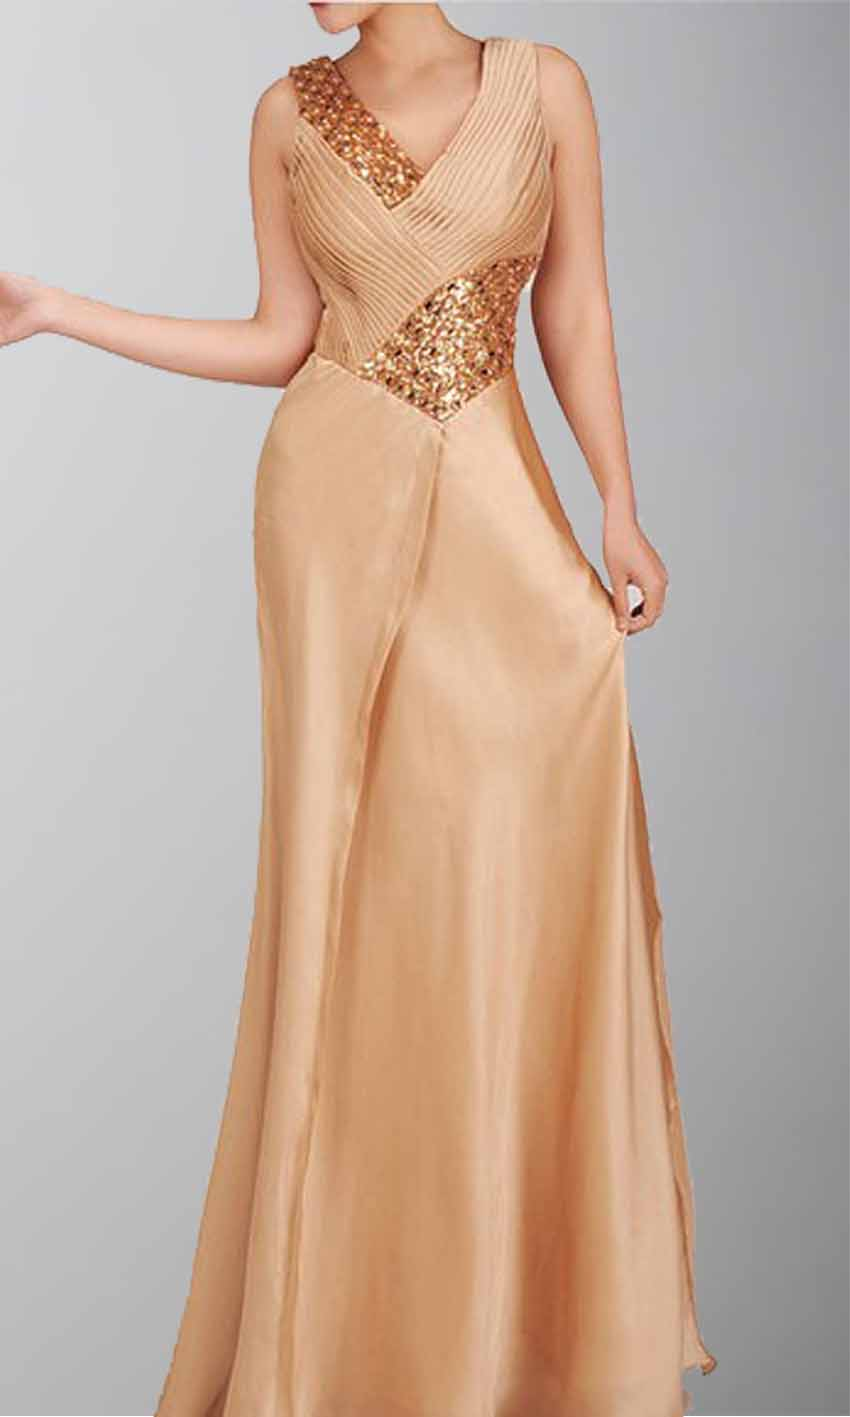 Gorgeous V-neck Golden Beaded Long Prom Dress KSP029 [KSP029] - £101.00 : Cheap Prom Dresses Uk, Bridesmaid Dresses, 2014 Prom & Evening Dresses, Look for cheap elegant prom dresses 2014, cocktail gowns, or dresses for special occasions? kissprom.co.uk offers various bridesmaid dresses, evening dress, free shipping to UK etc.